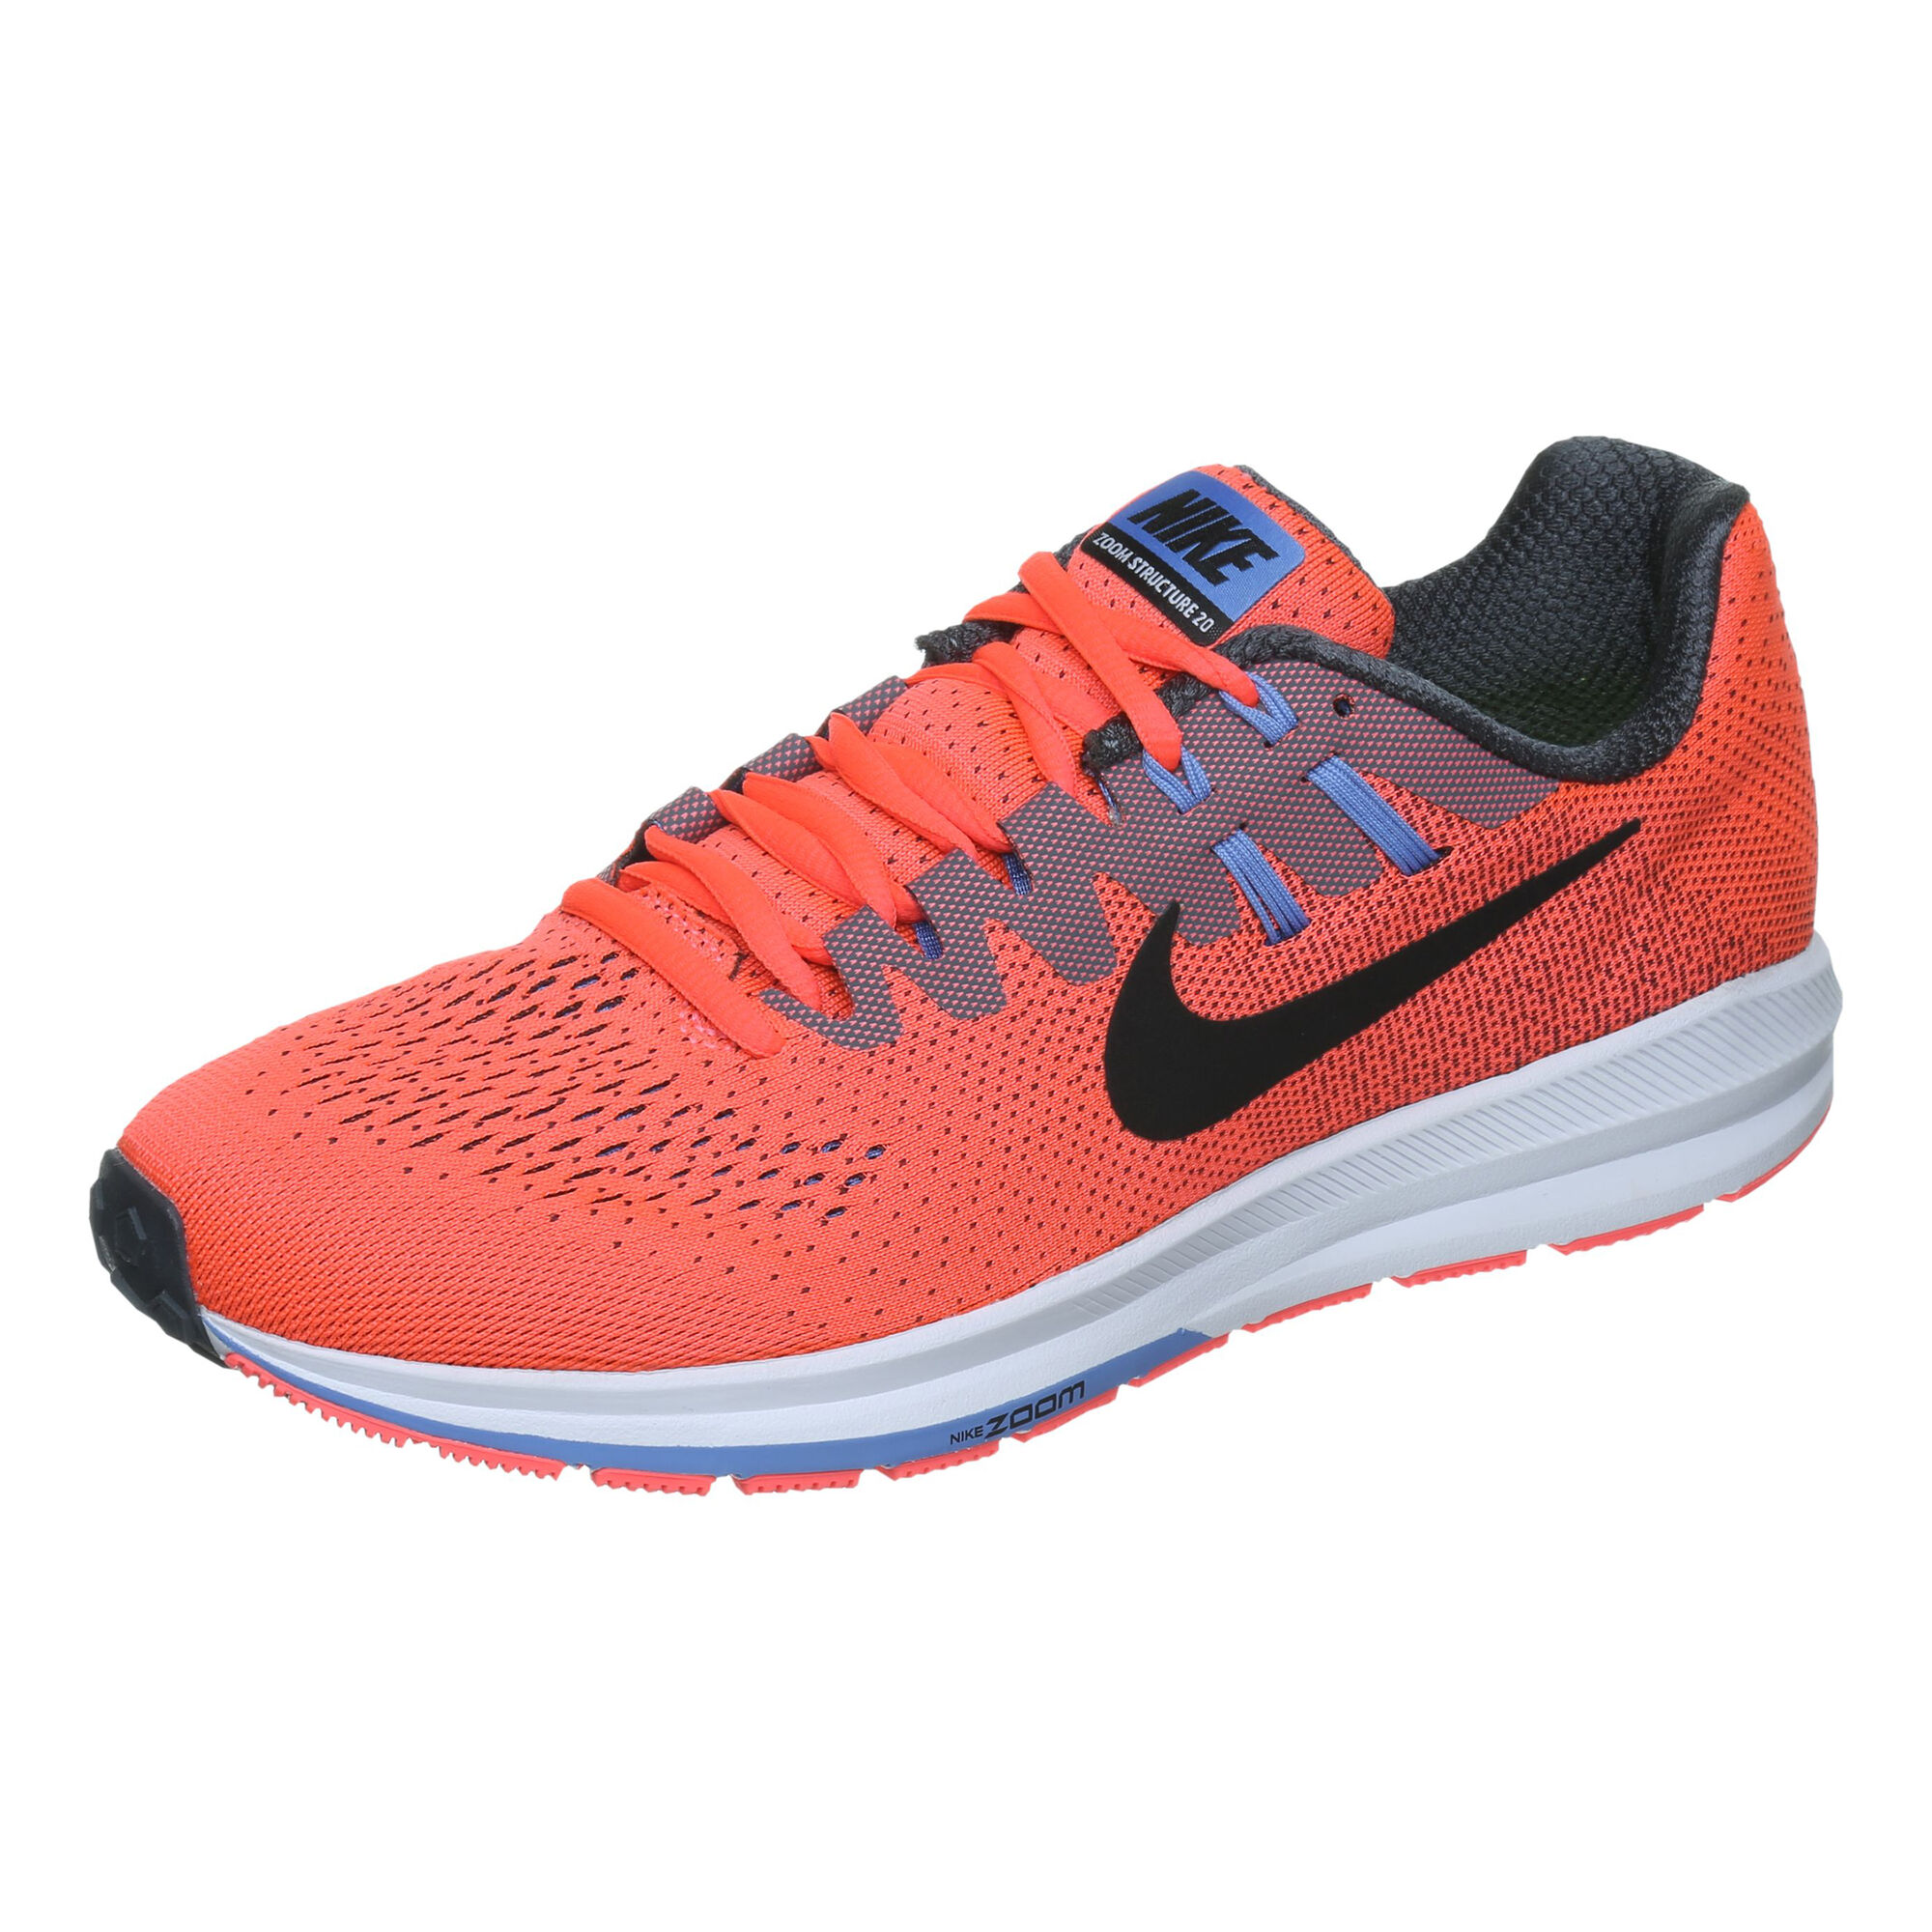 7f29d8fd49244e Nike · Nike · Nike · Nike · Nike · Nike · Nike · Nike · Nike · Nike. Air  Zoom Structure 20 ...